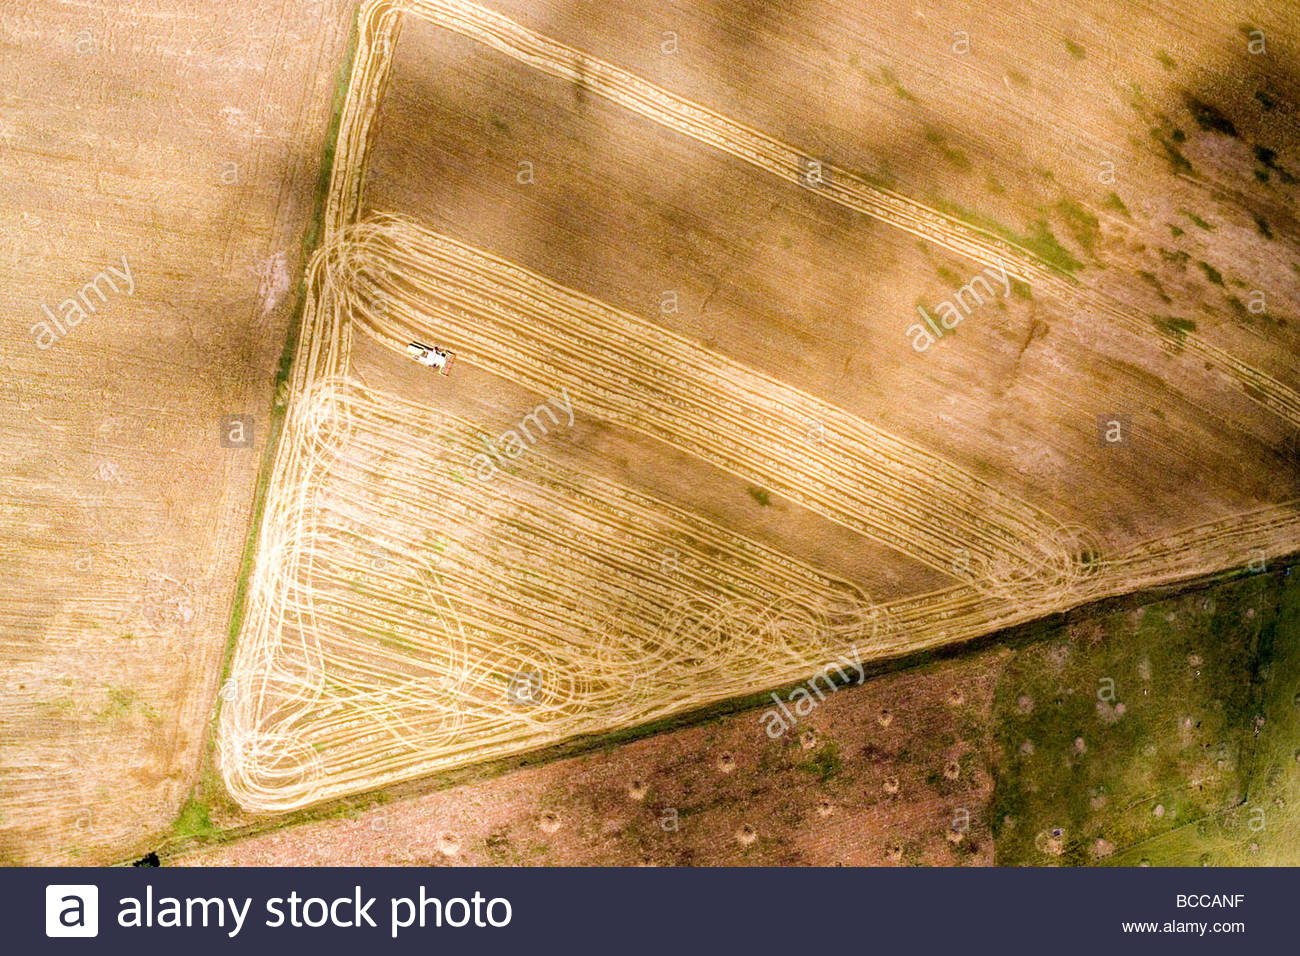 Corn is harvested with combines in the agricultural lands near Eldoret Stock Photo